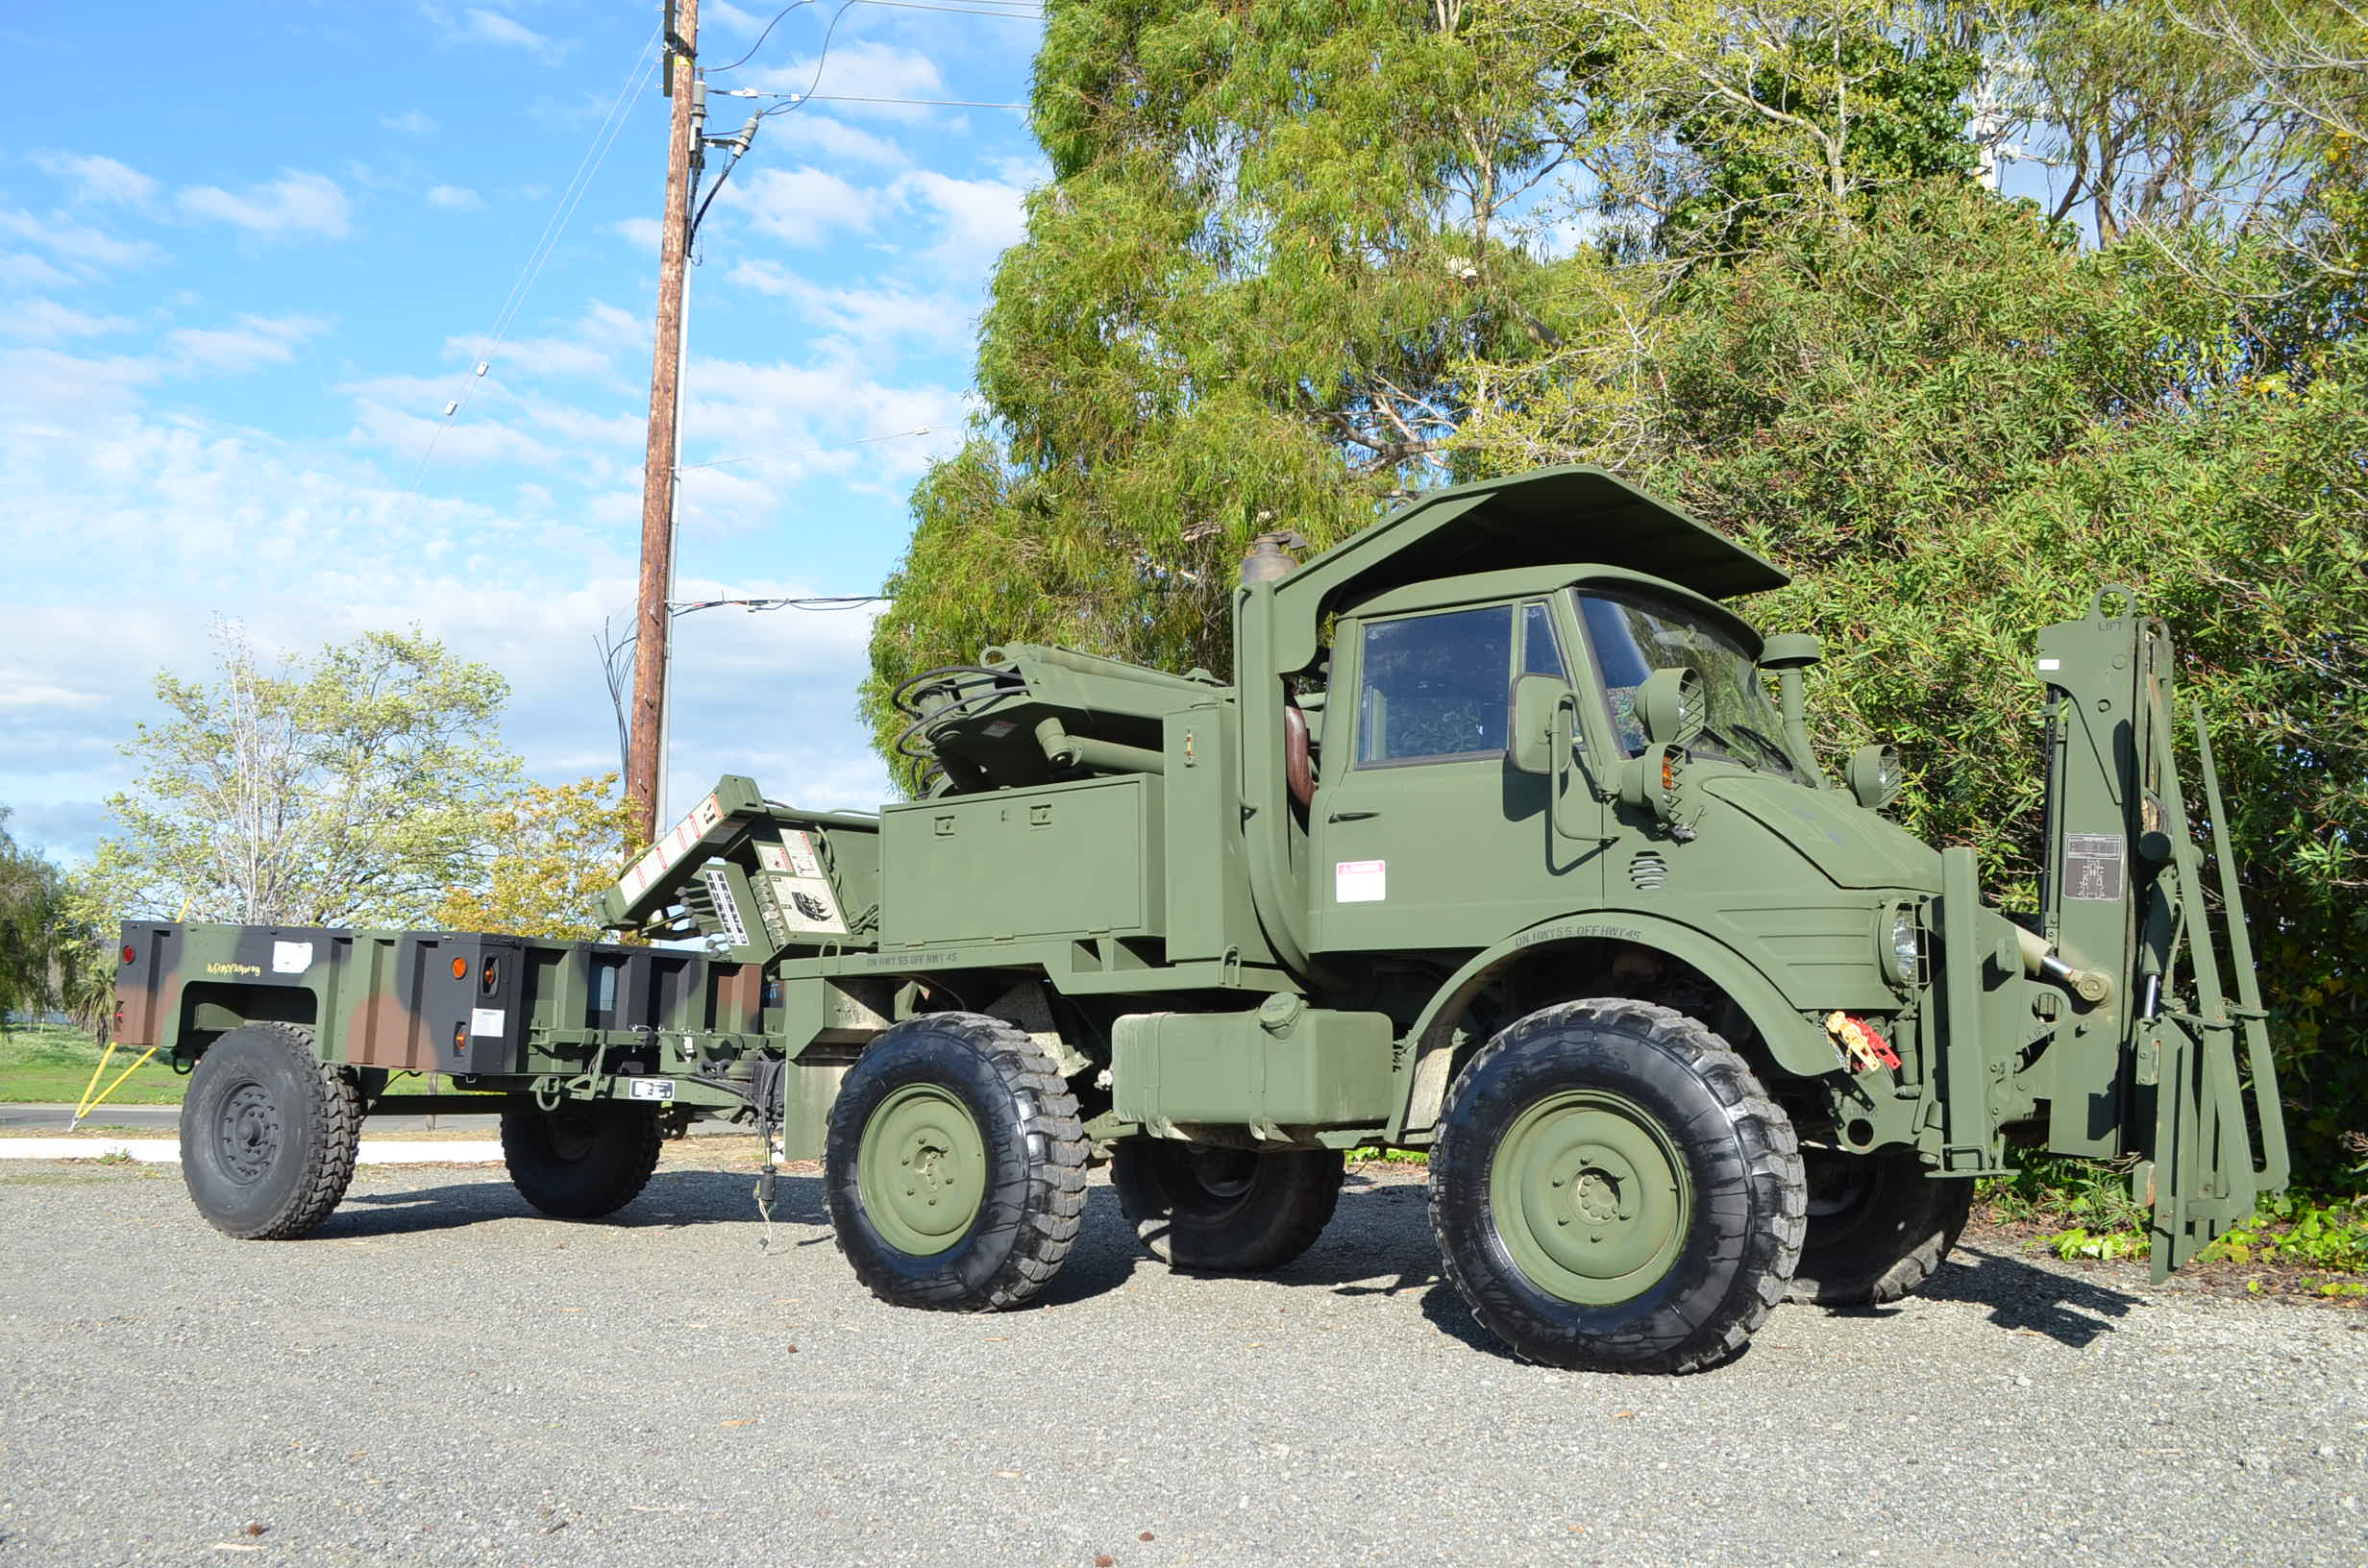 Images of Military Unimog For Sale California - #rock-cafe